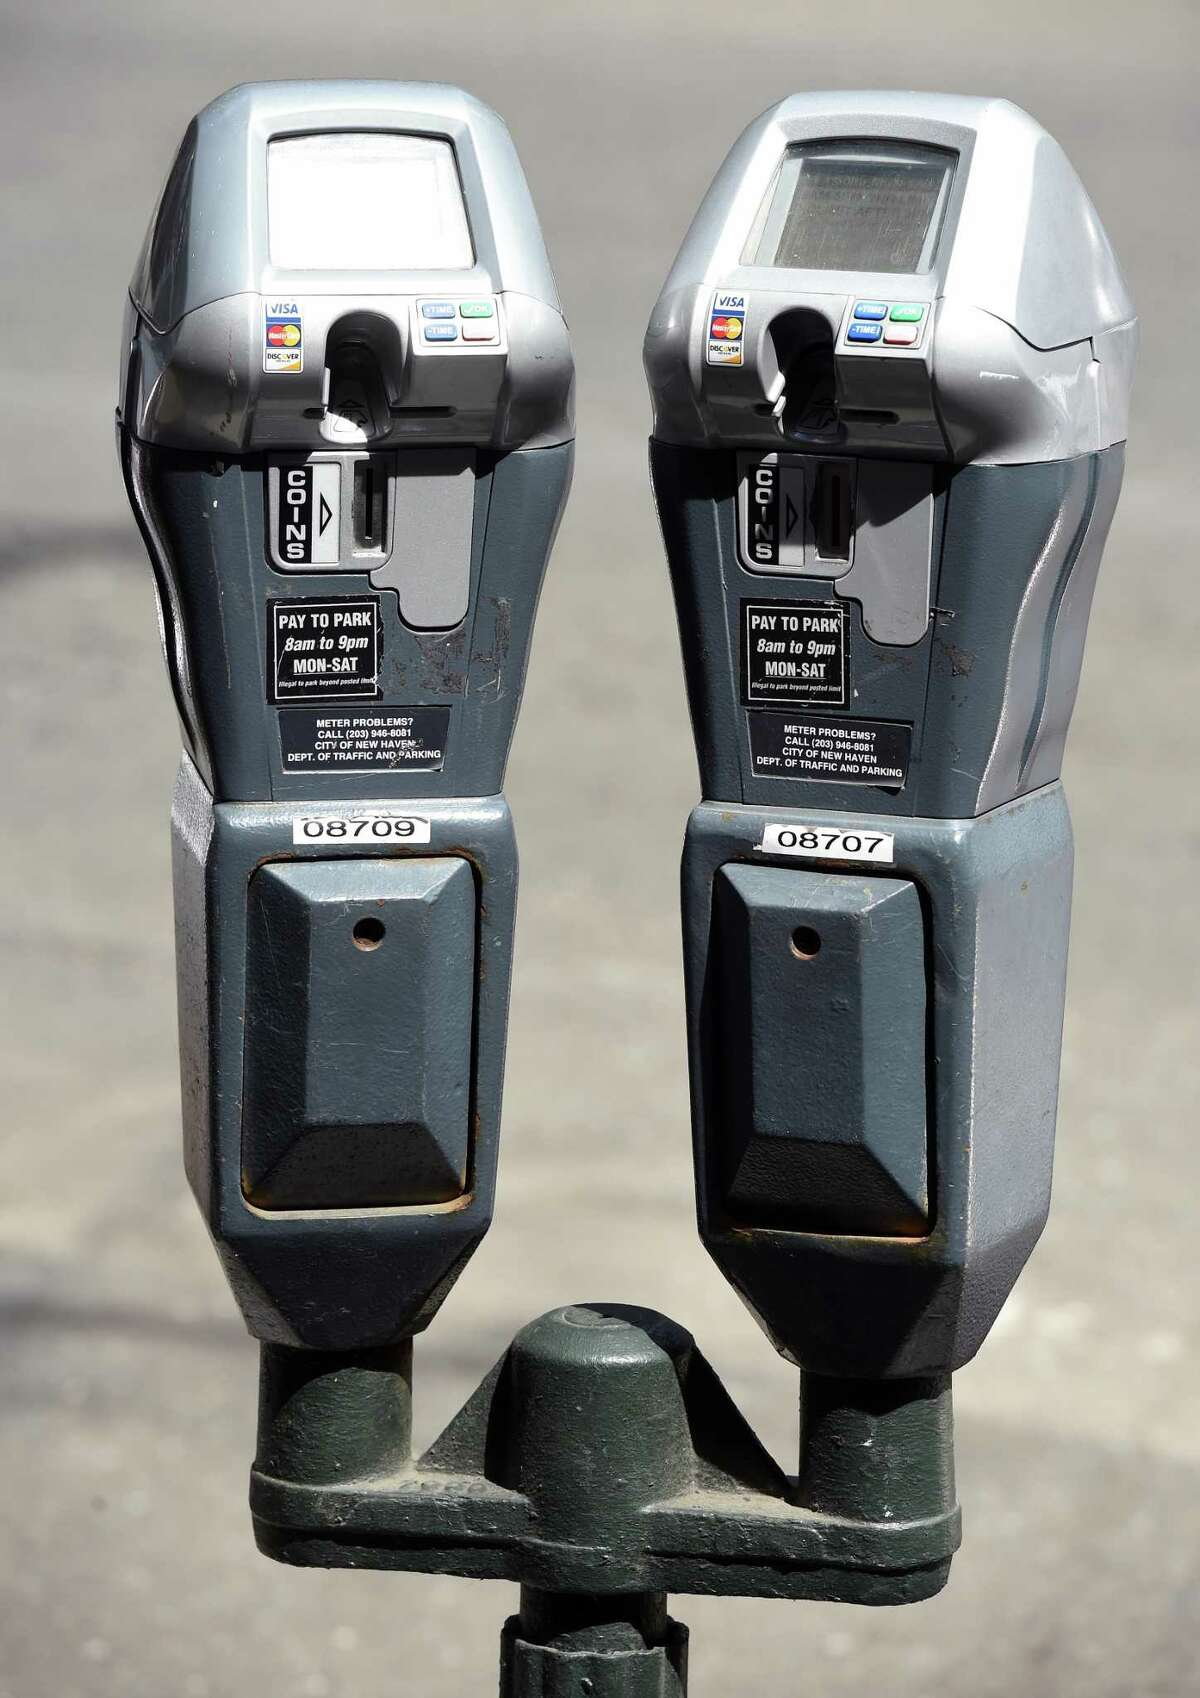 Parking meters on Chapel Street in New Haven on August 22, 2019.